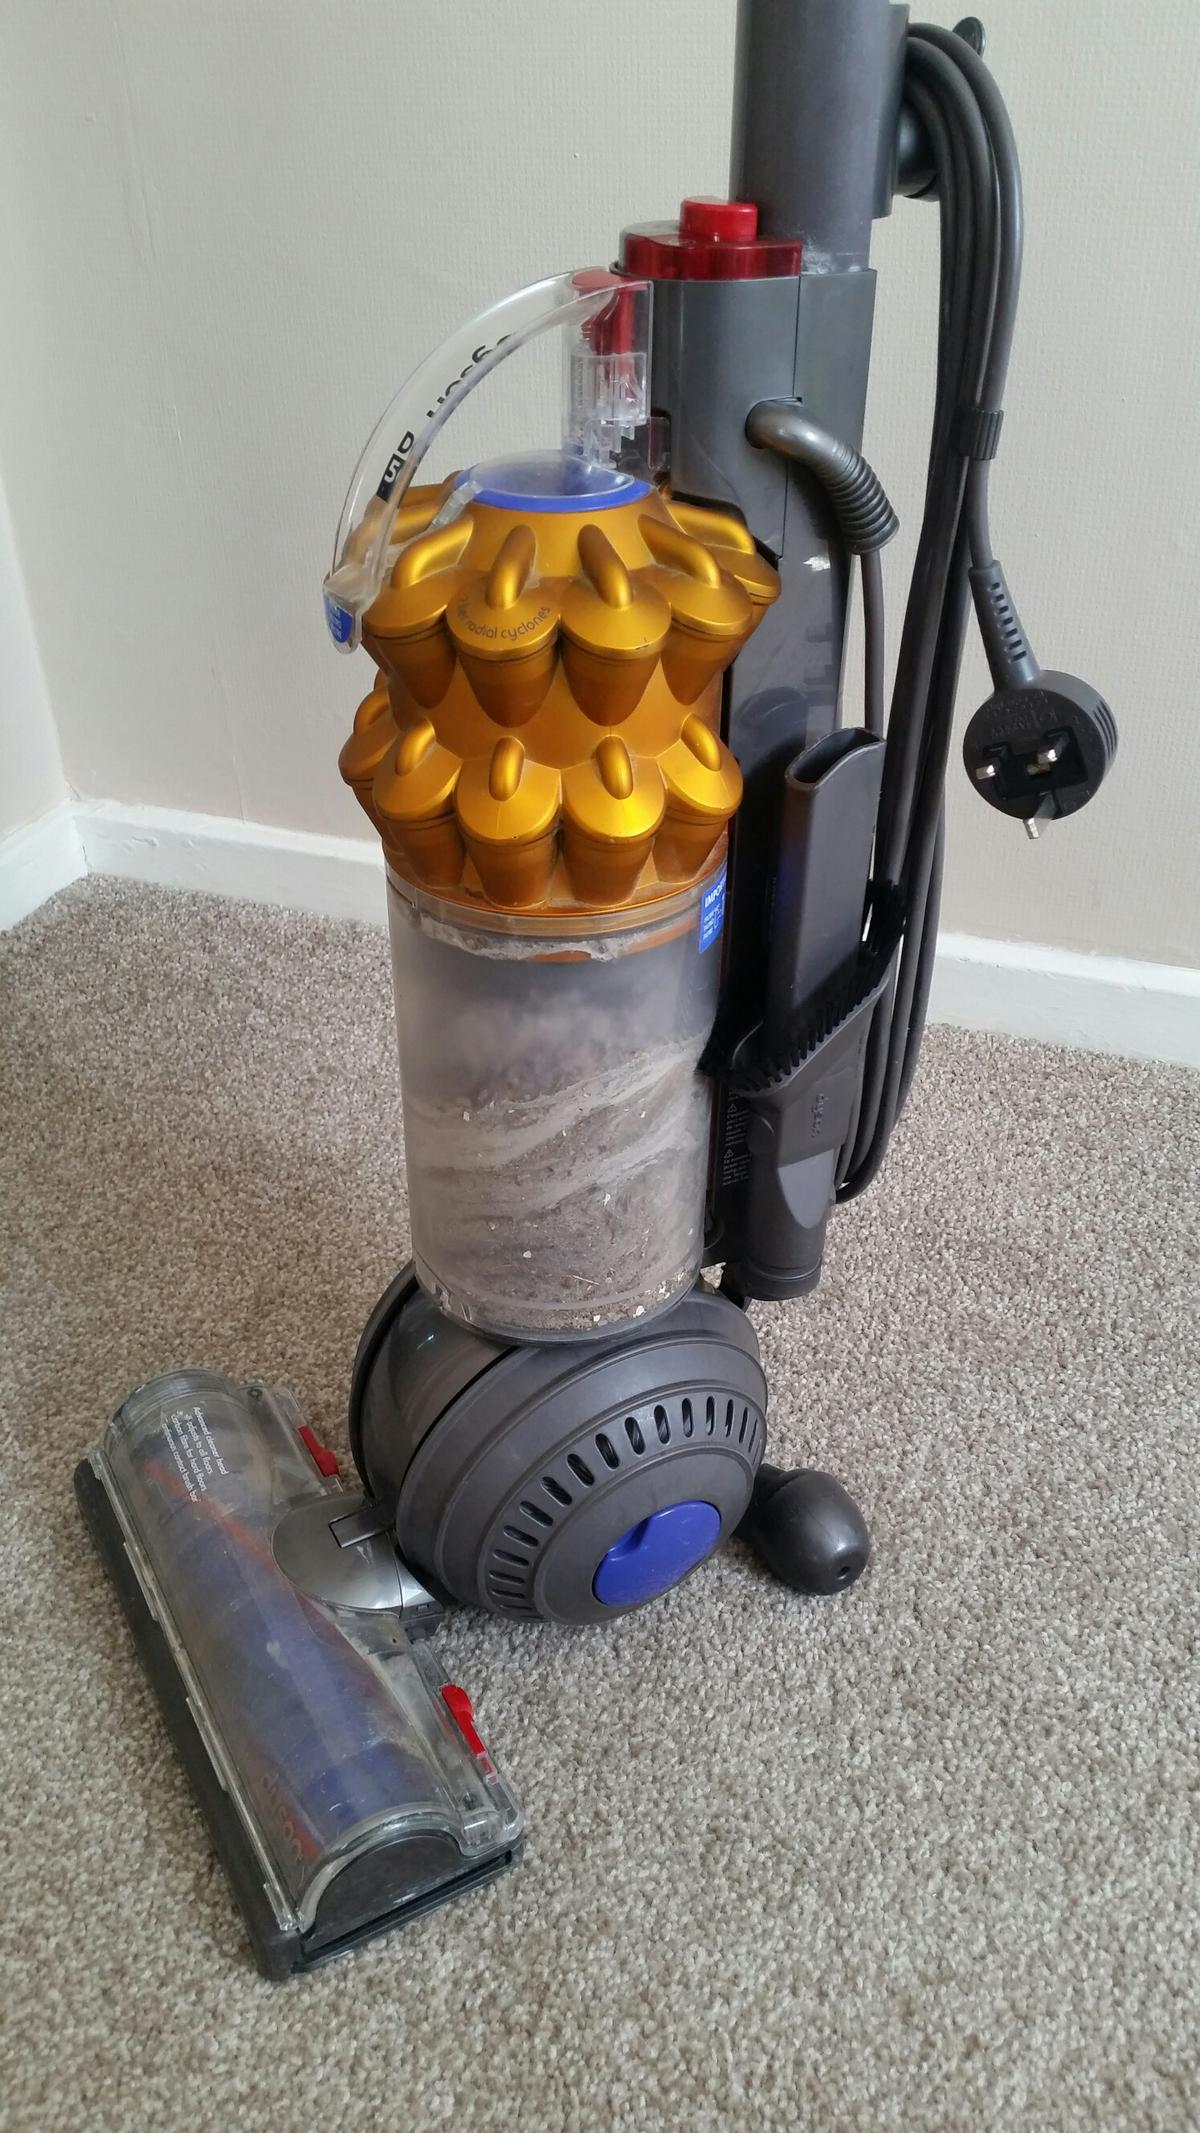 Dyson DC50 in London Borough of Hillingdon for £45 00 for